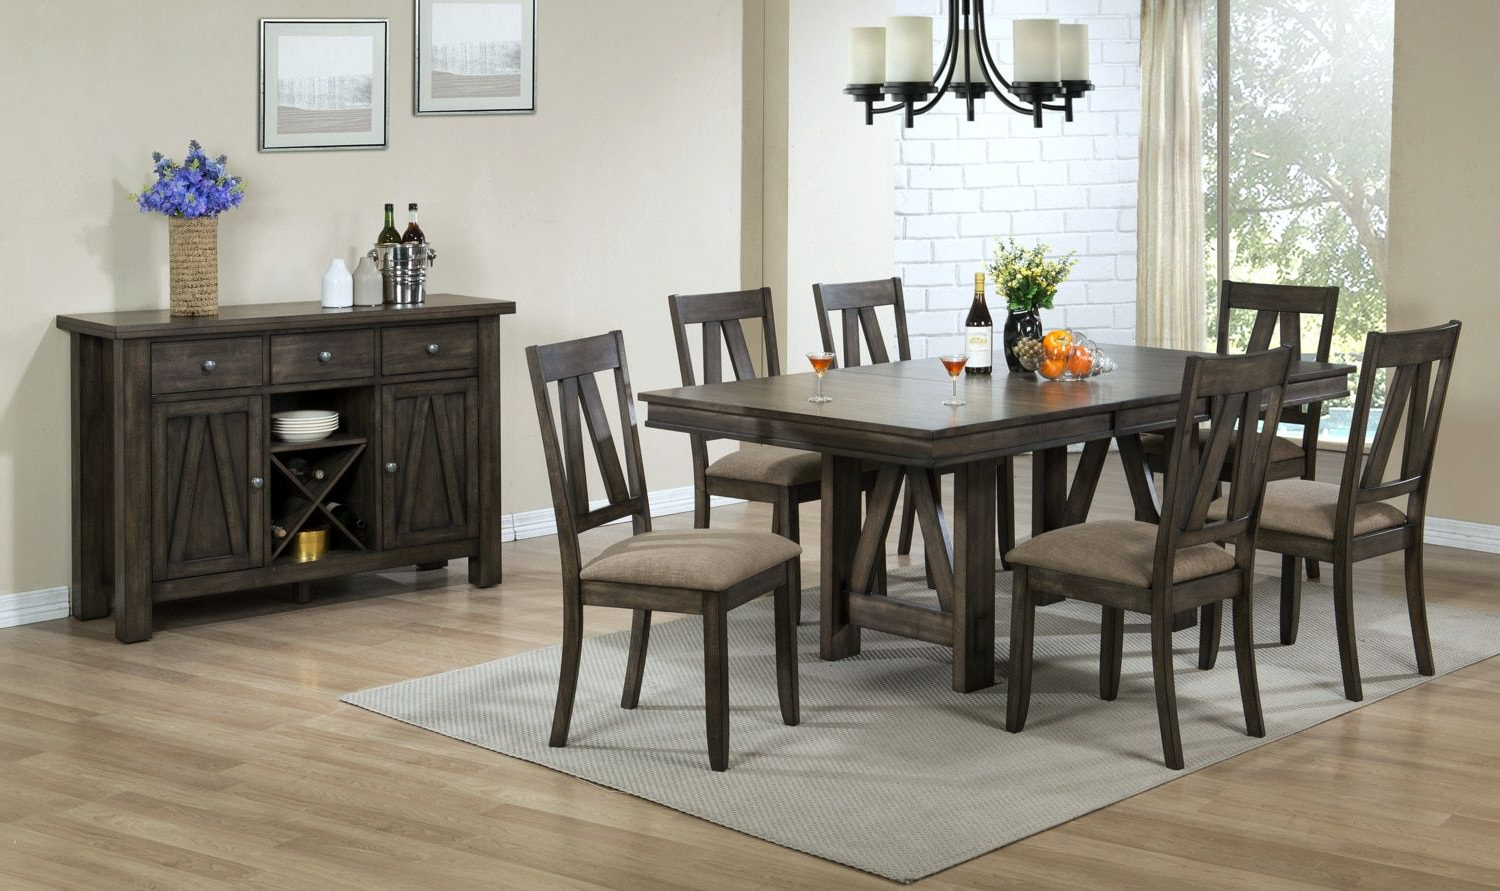 Espresso Finish Wood Classic Design Dining Tables With Fashionable Thompson 7 Piece Dining Room Set – Espresso (View 11 of 30)